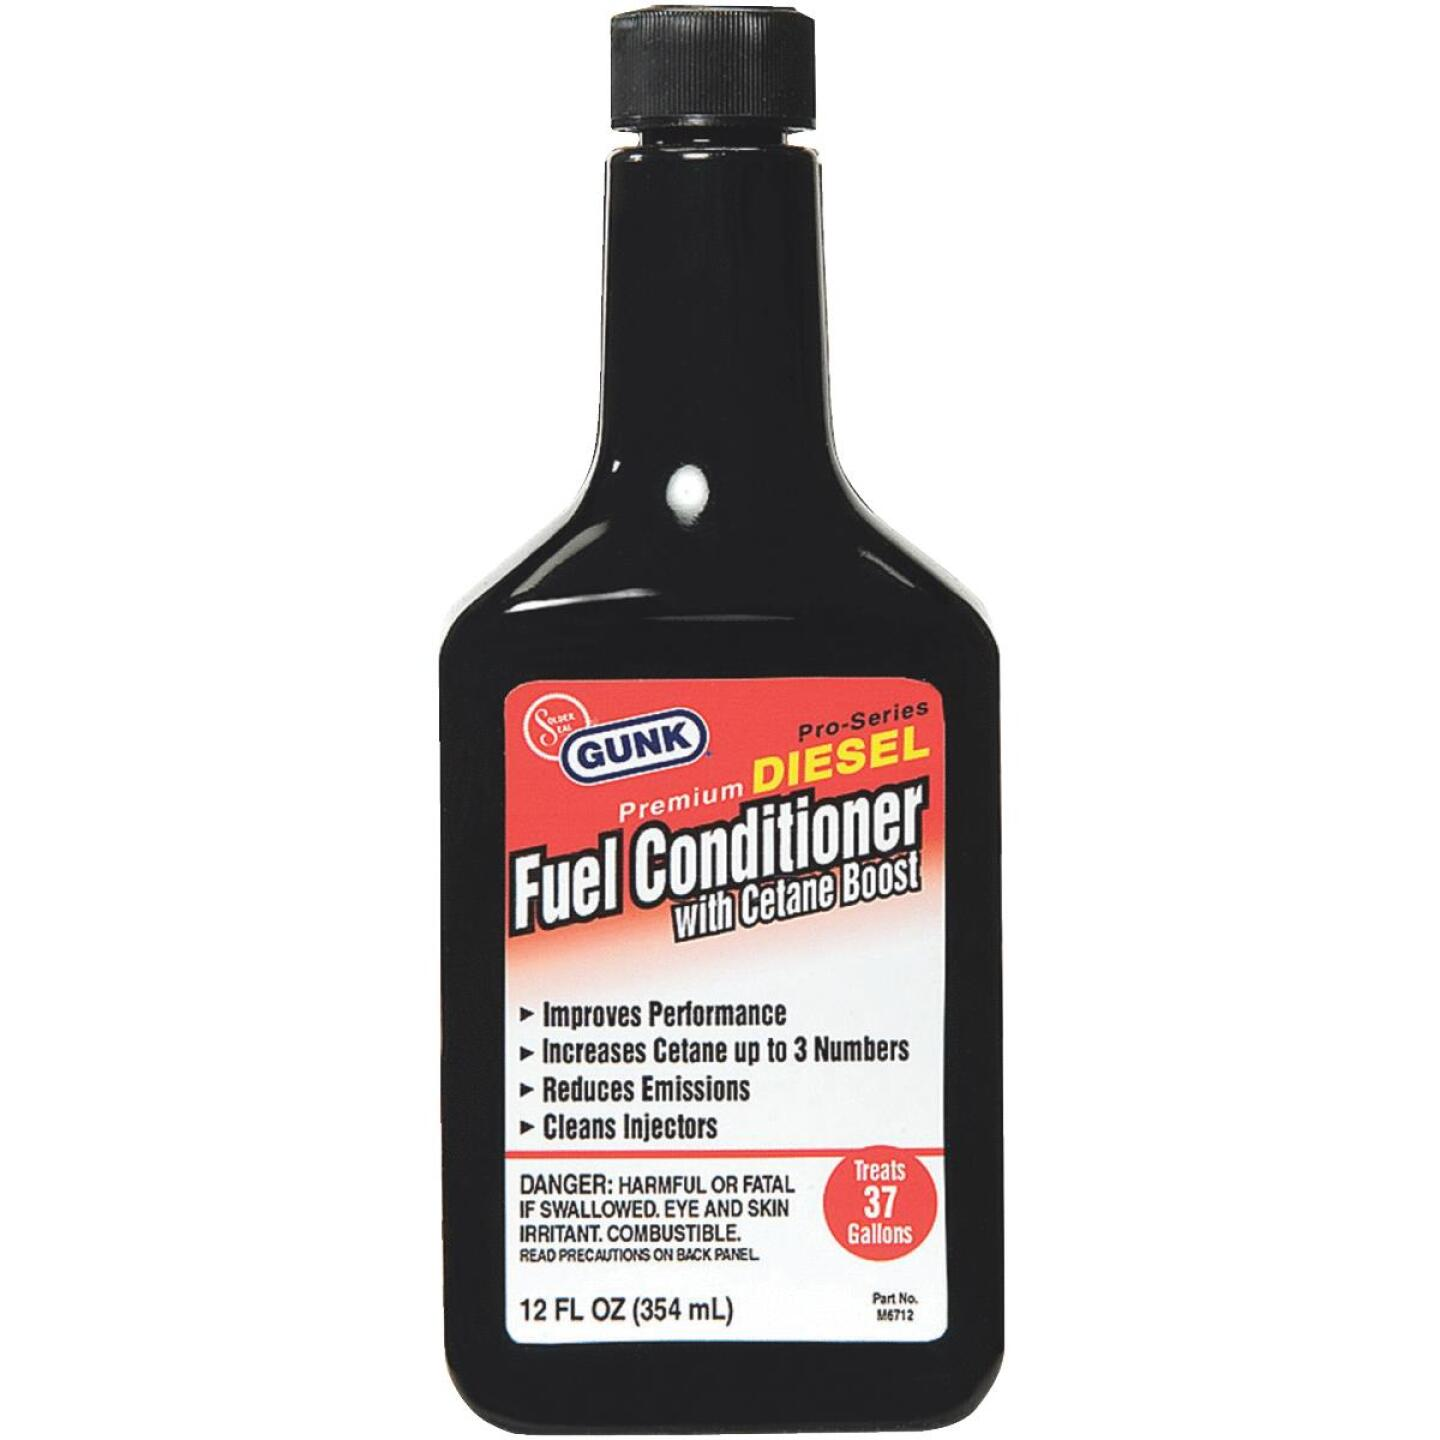 Gunk 12 Oz. Diesel Additive Fuel Conditioner with Cetane Boost Image 1